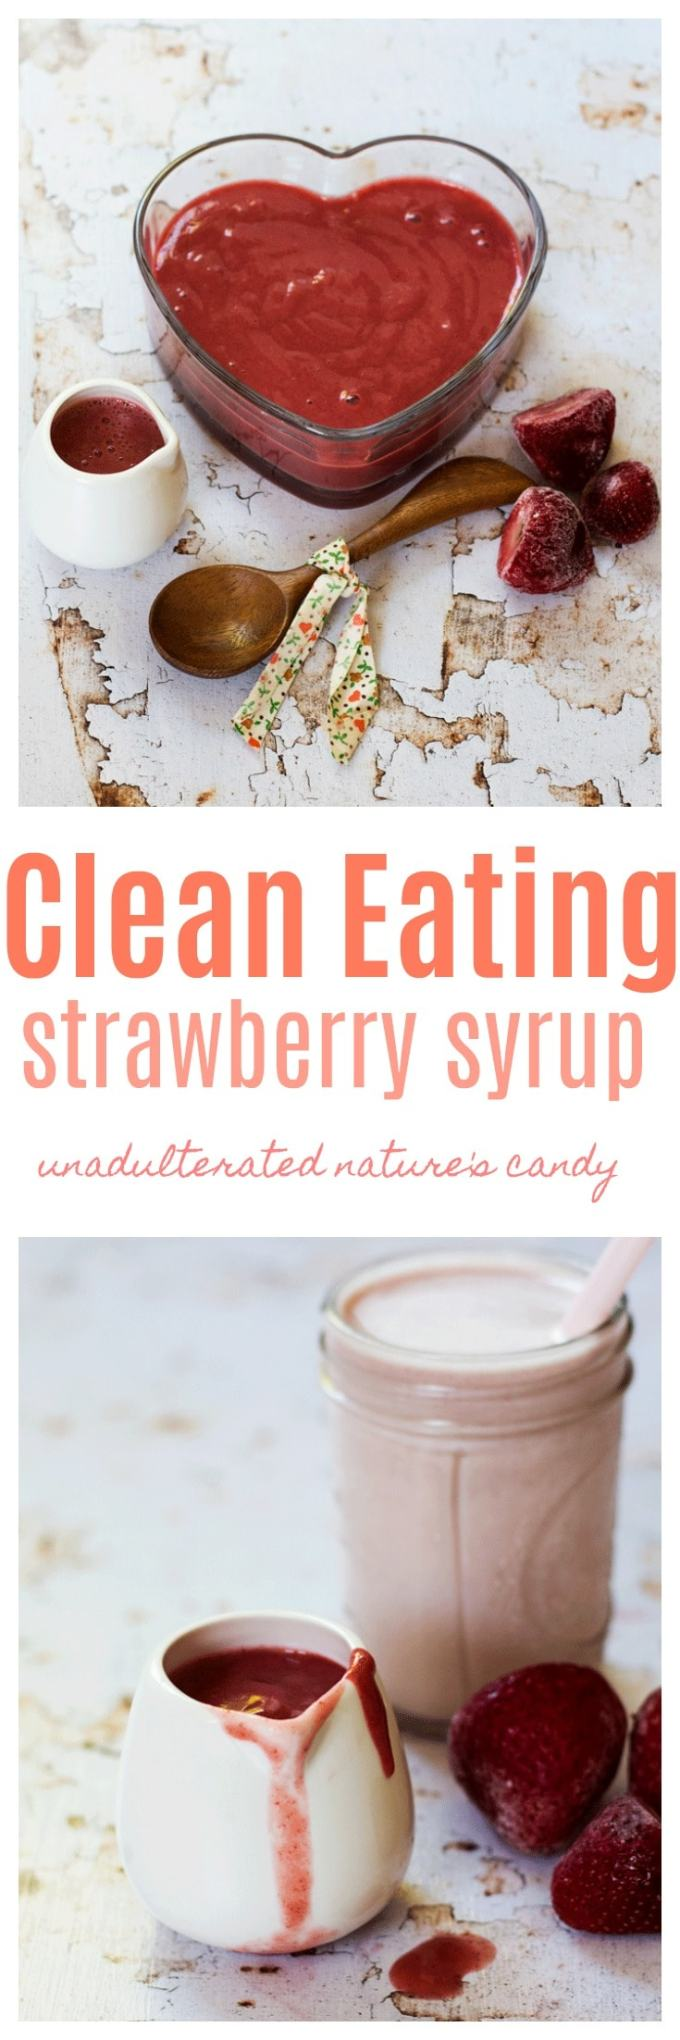 Homemade Strawberry Syrup is as easy as roasting up some delicious fresh strawberries and blending them until smooth, and it tastes heavenly!   This crazy delicious Homemade Strawberry Syrup makes ice cream, milkshakes, pancakes, waffles, crepes (you get the picture) taste gourmet with little effort and no nasty ingredients!  Serve some up to your guests today.